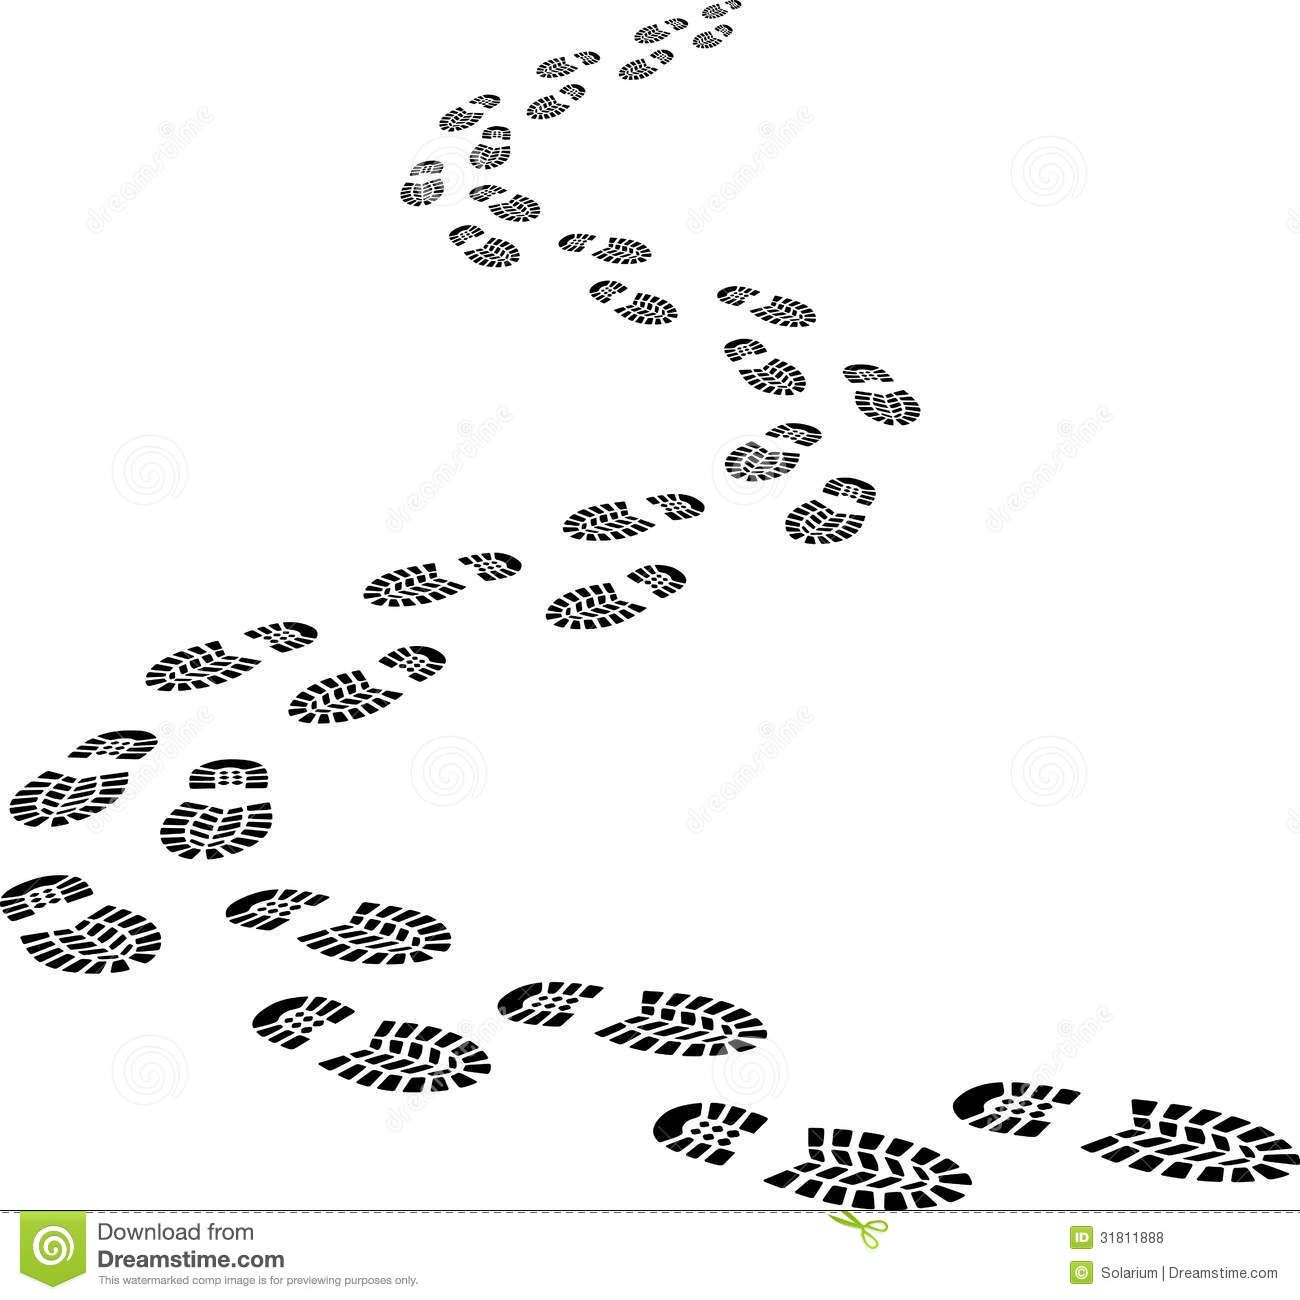 Footprints Or Are The Impressions Or Images Left Behind